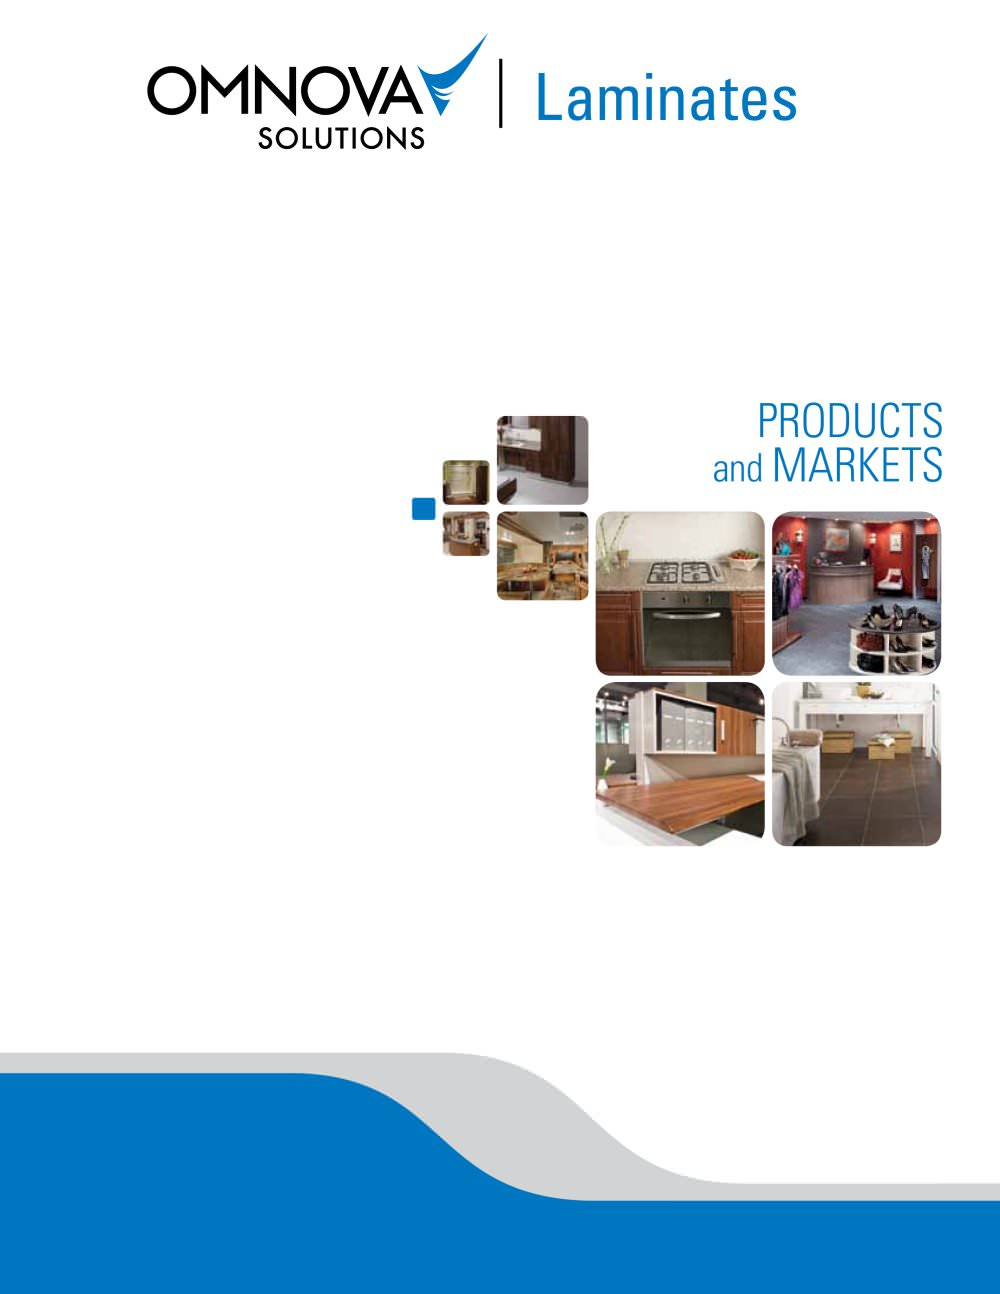 OMNIVA Laminates Products and Markets Brochure - Omnova - PDF ...